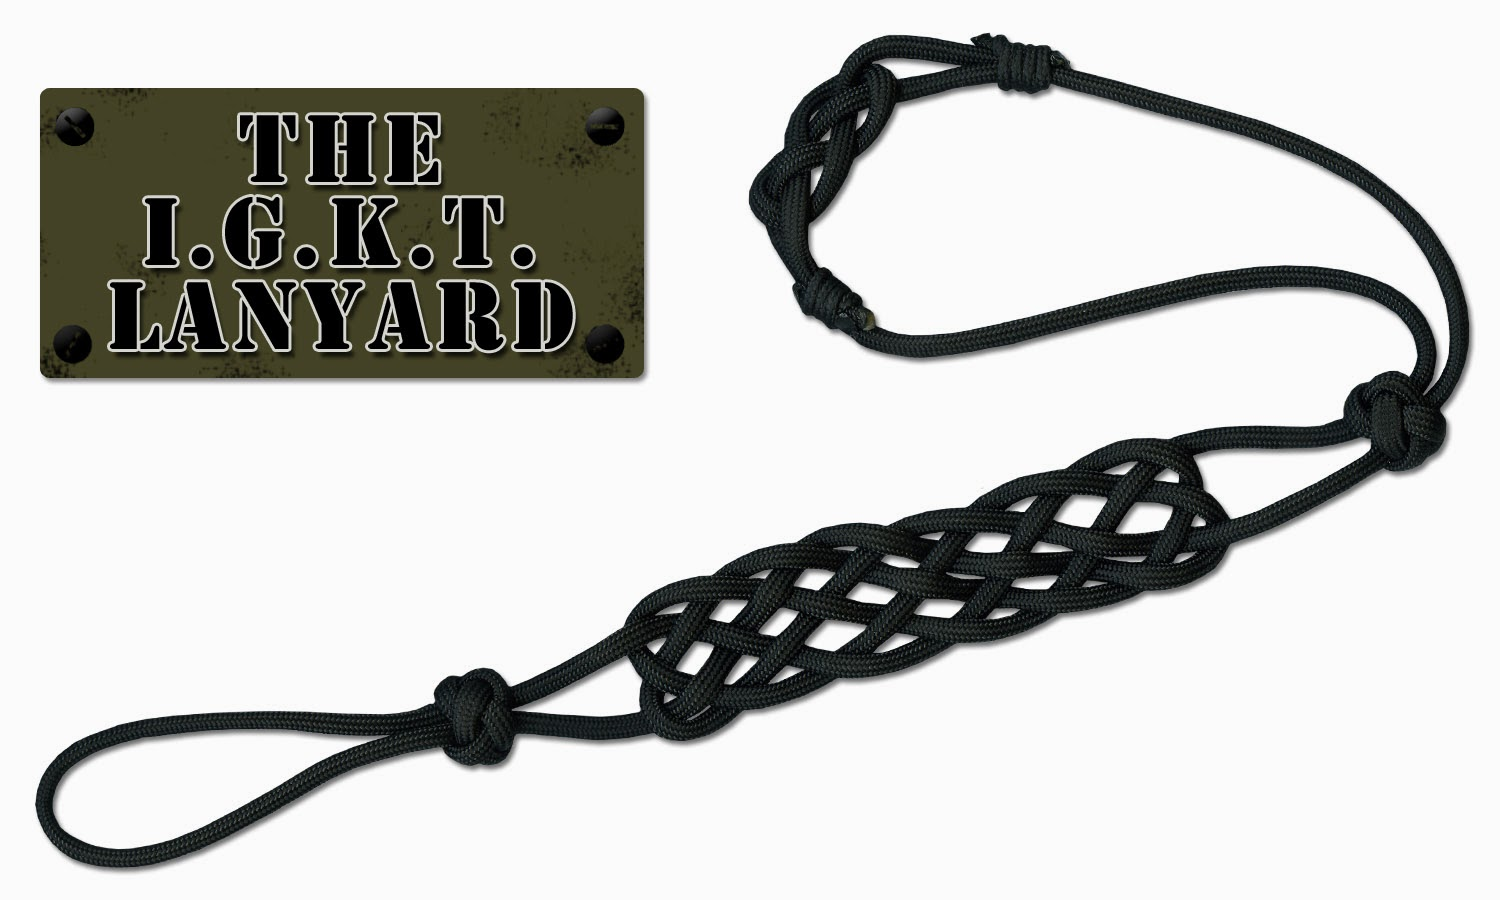 The IGKT Lanyard made by Joel Hooks - Pepperell Braiding Co.